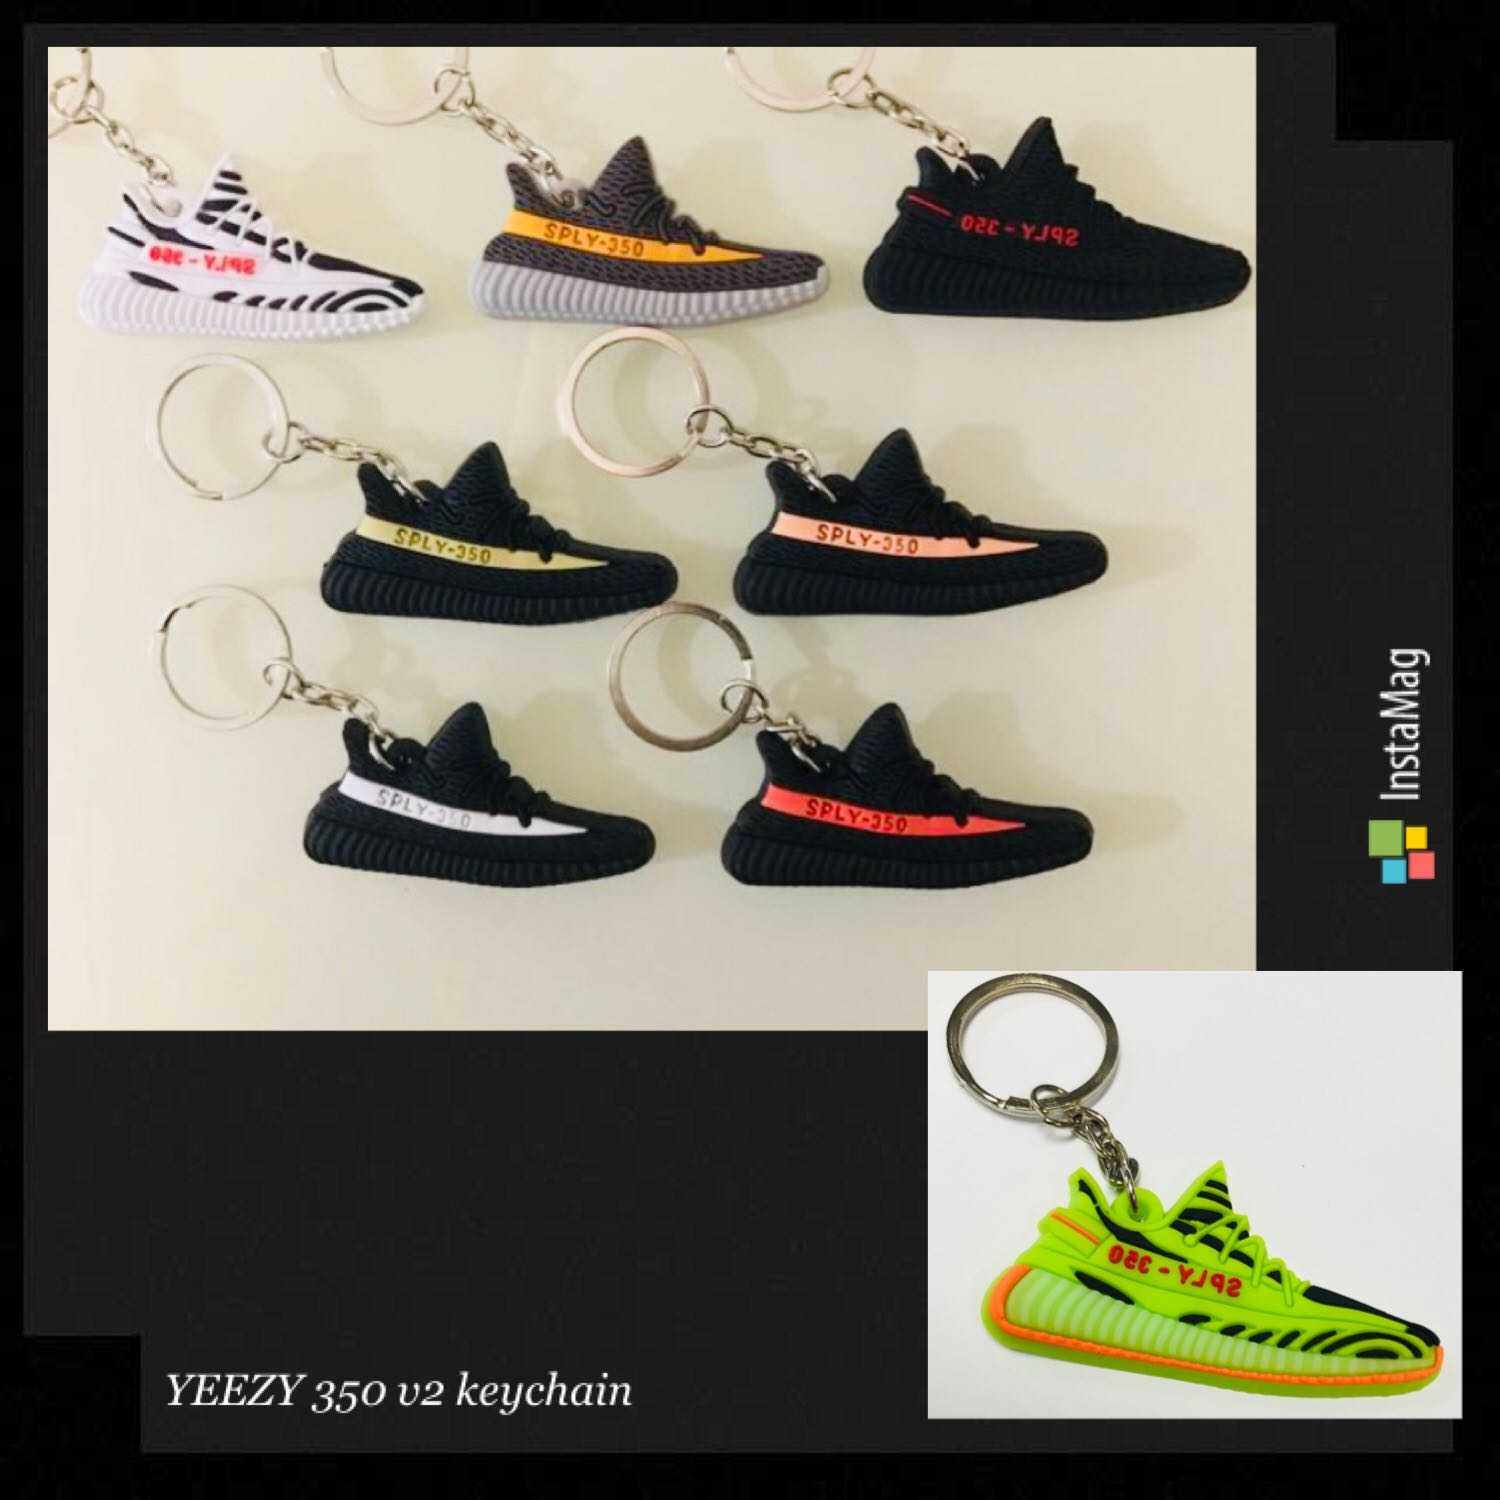 2718013bb3291 READY STOCK - LATEST NEW ARRIVAL!! Inspired ADIDAS YEEZY BOOST 350 ...